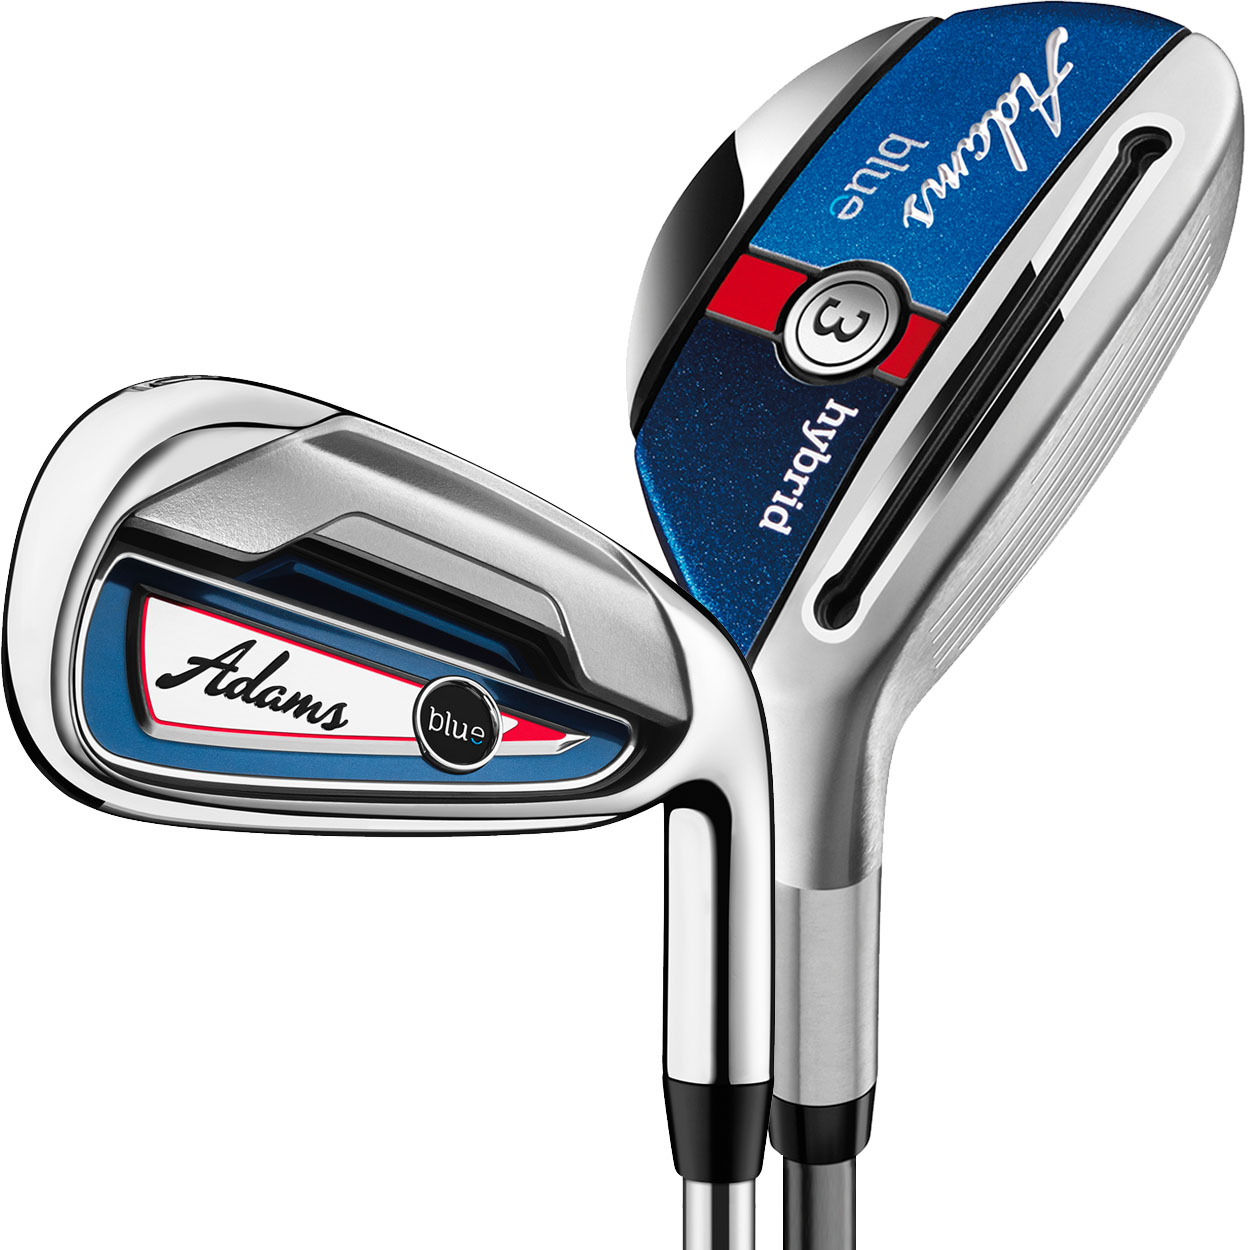 Adams Golf Blue Combo Hybrid Iron Set (#3h-#4h, 5-PW), Graphite/Steel Shafts -